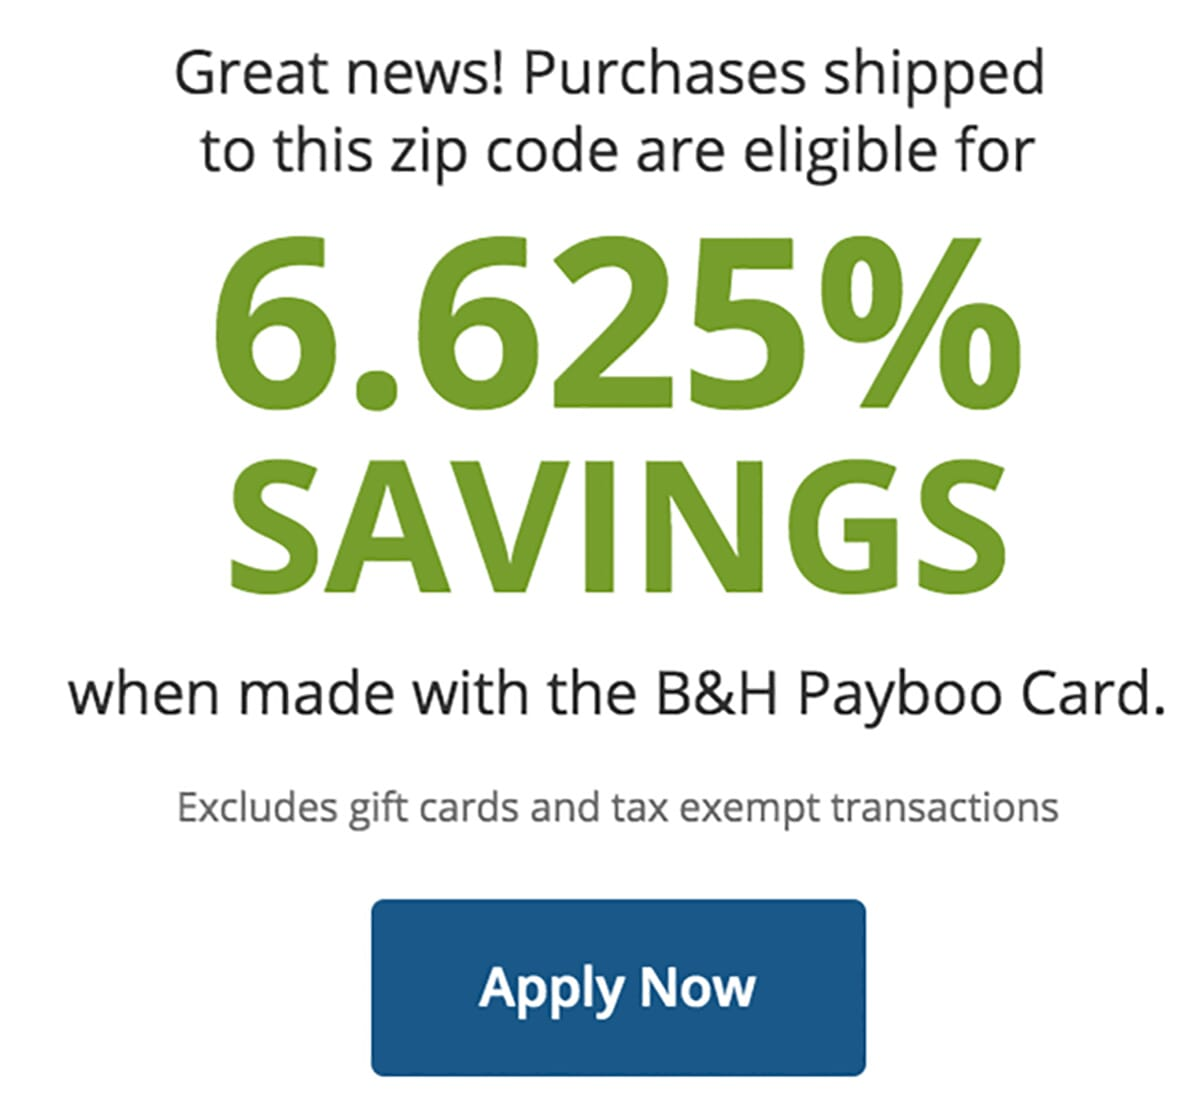 B&H Payboo Credit Card: Is it right for you? - How & Where it Works